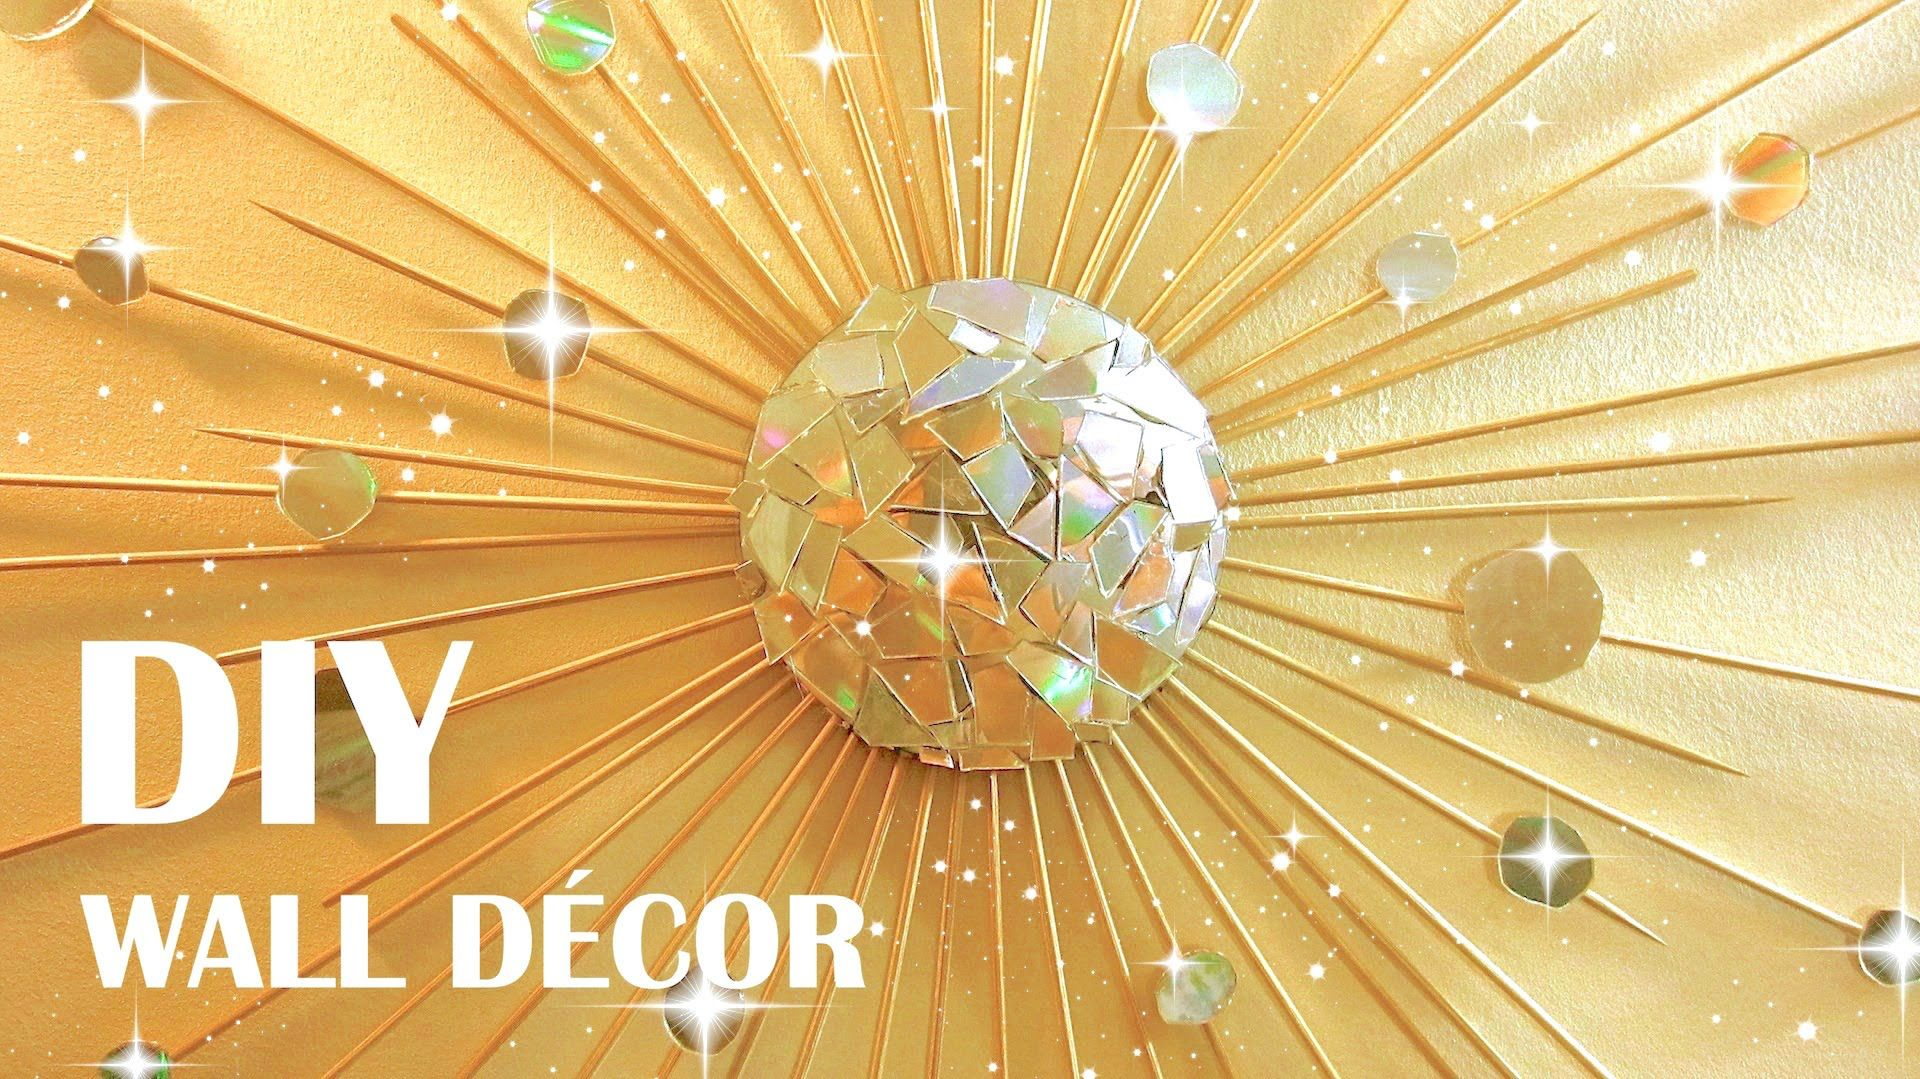 Turn Old CDs into Wall Decor | DIY Room Decor | DIY Wall Decor | DIY ...